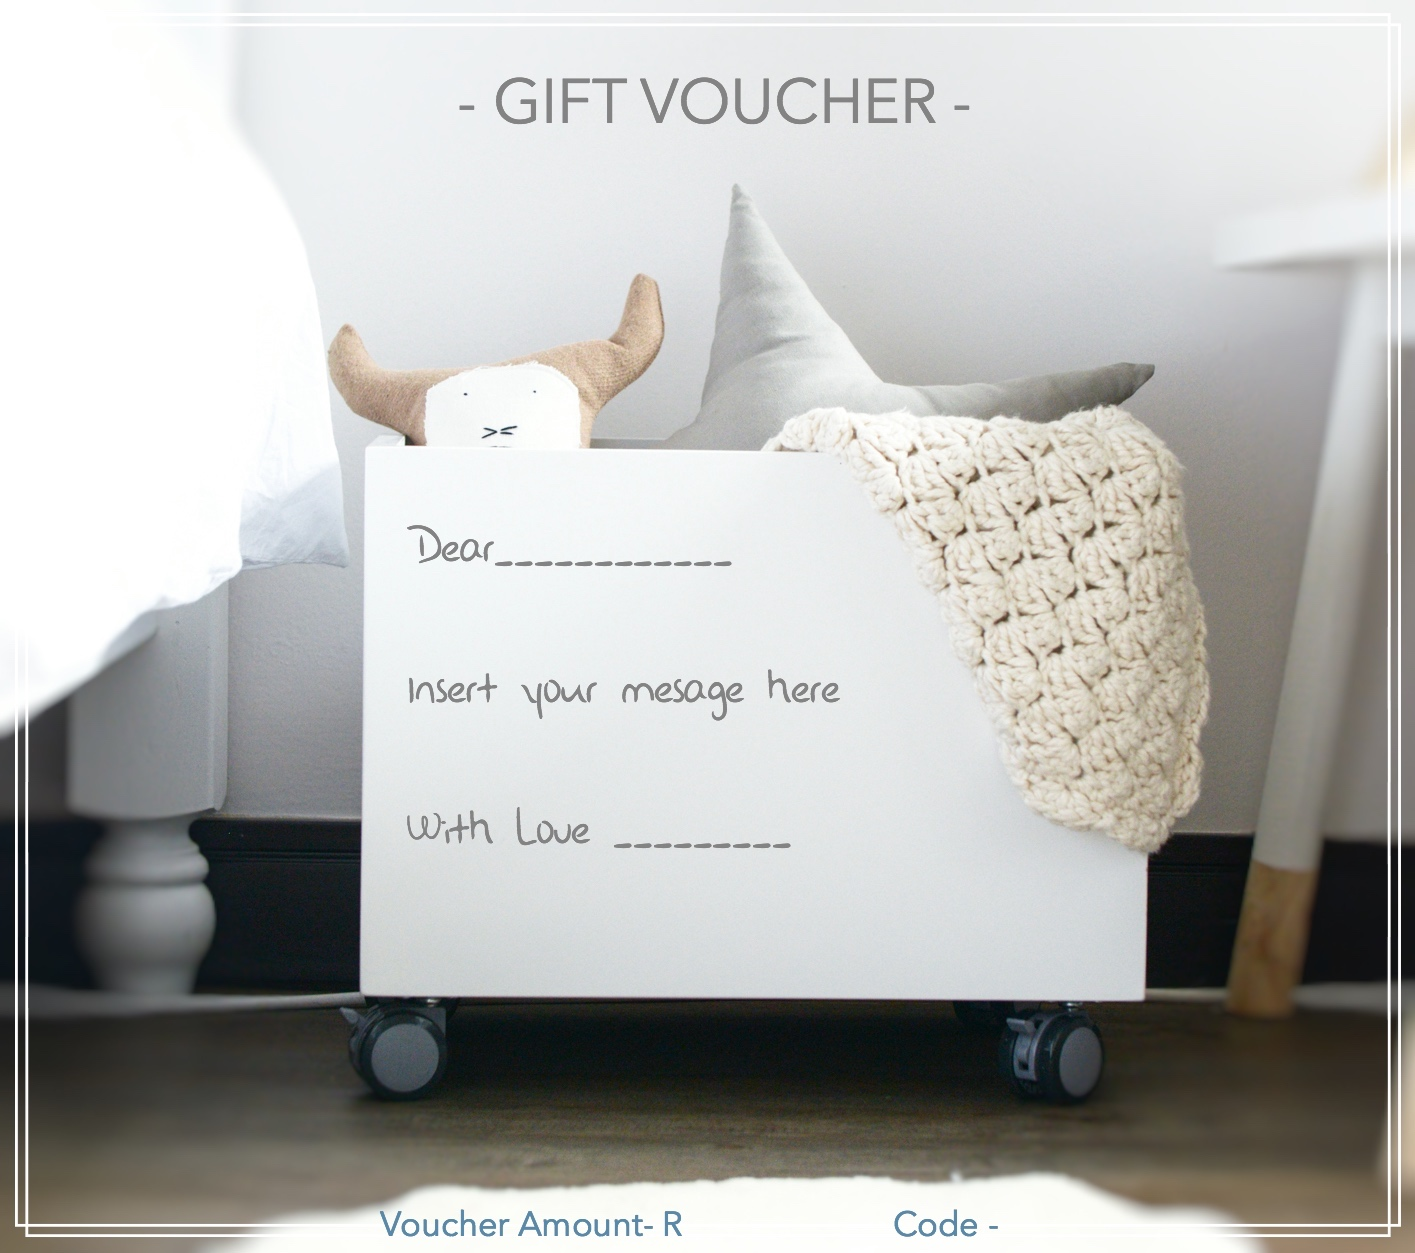 Want to spoil someone special but not sure what to get?